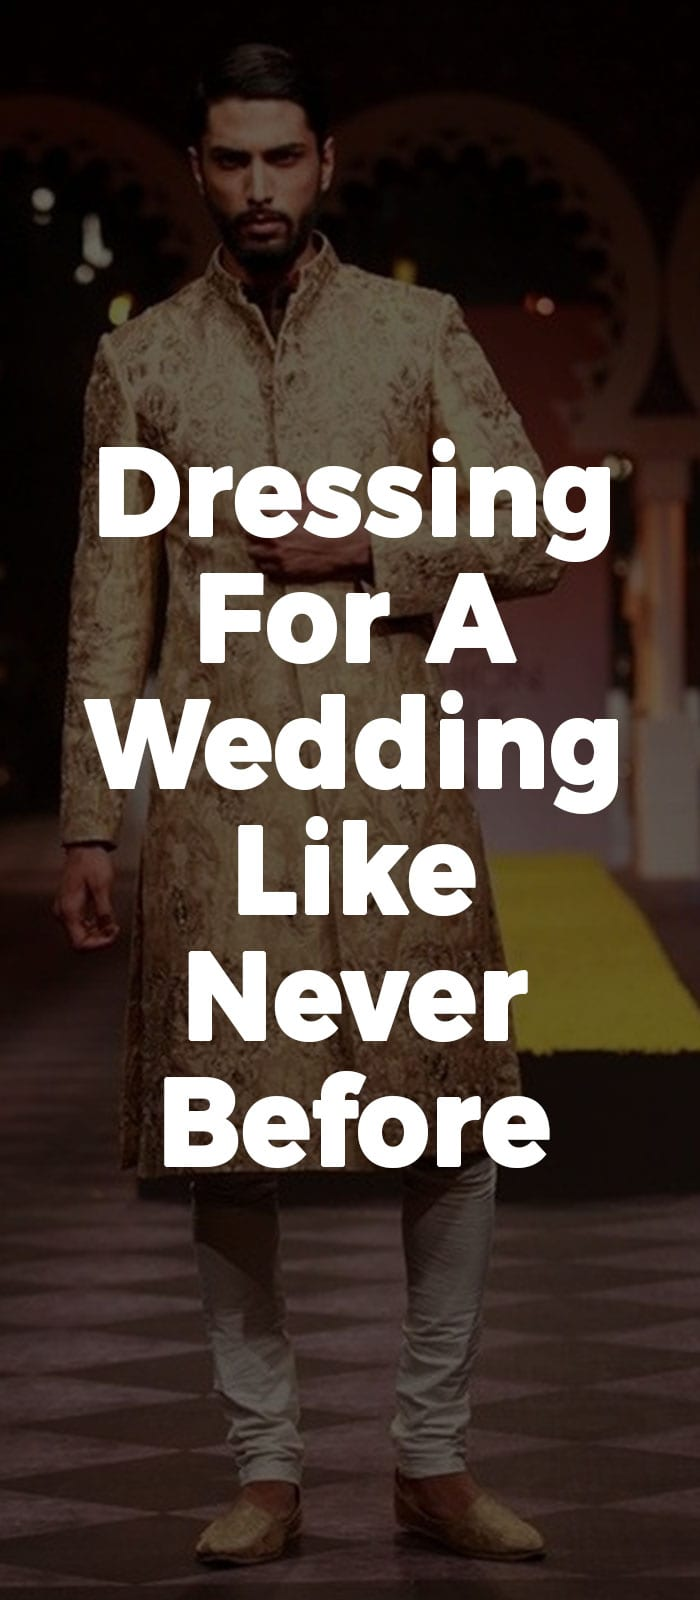 Dressing for a Wedding Like Never Before